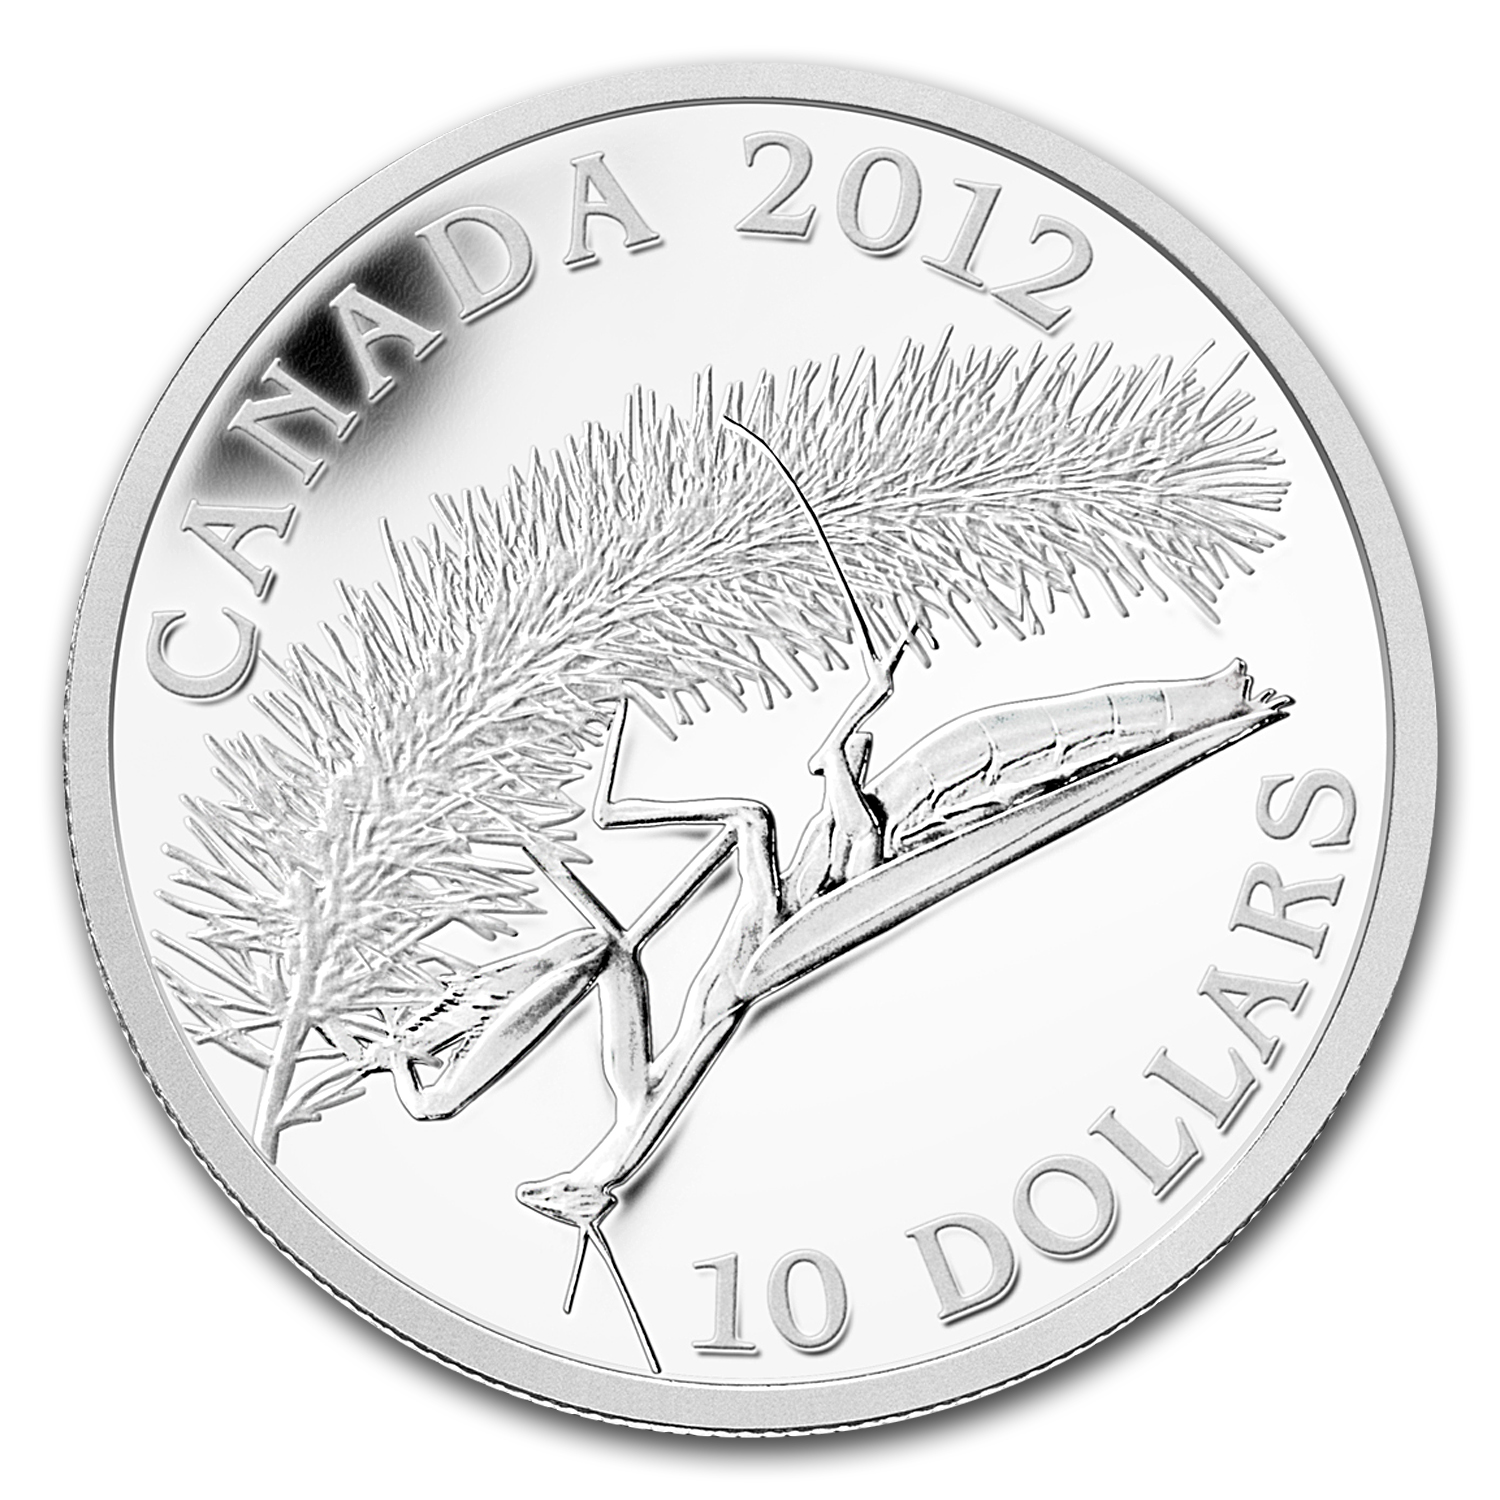 2012 1/2 oz Silver Canadian $10 Geographic Photo (Praying Mantis)